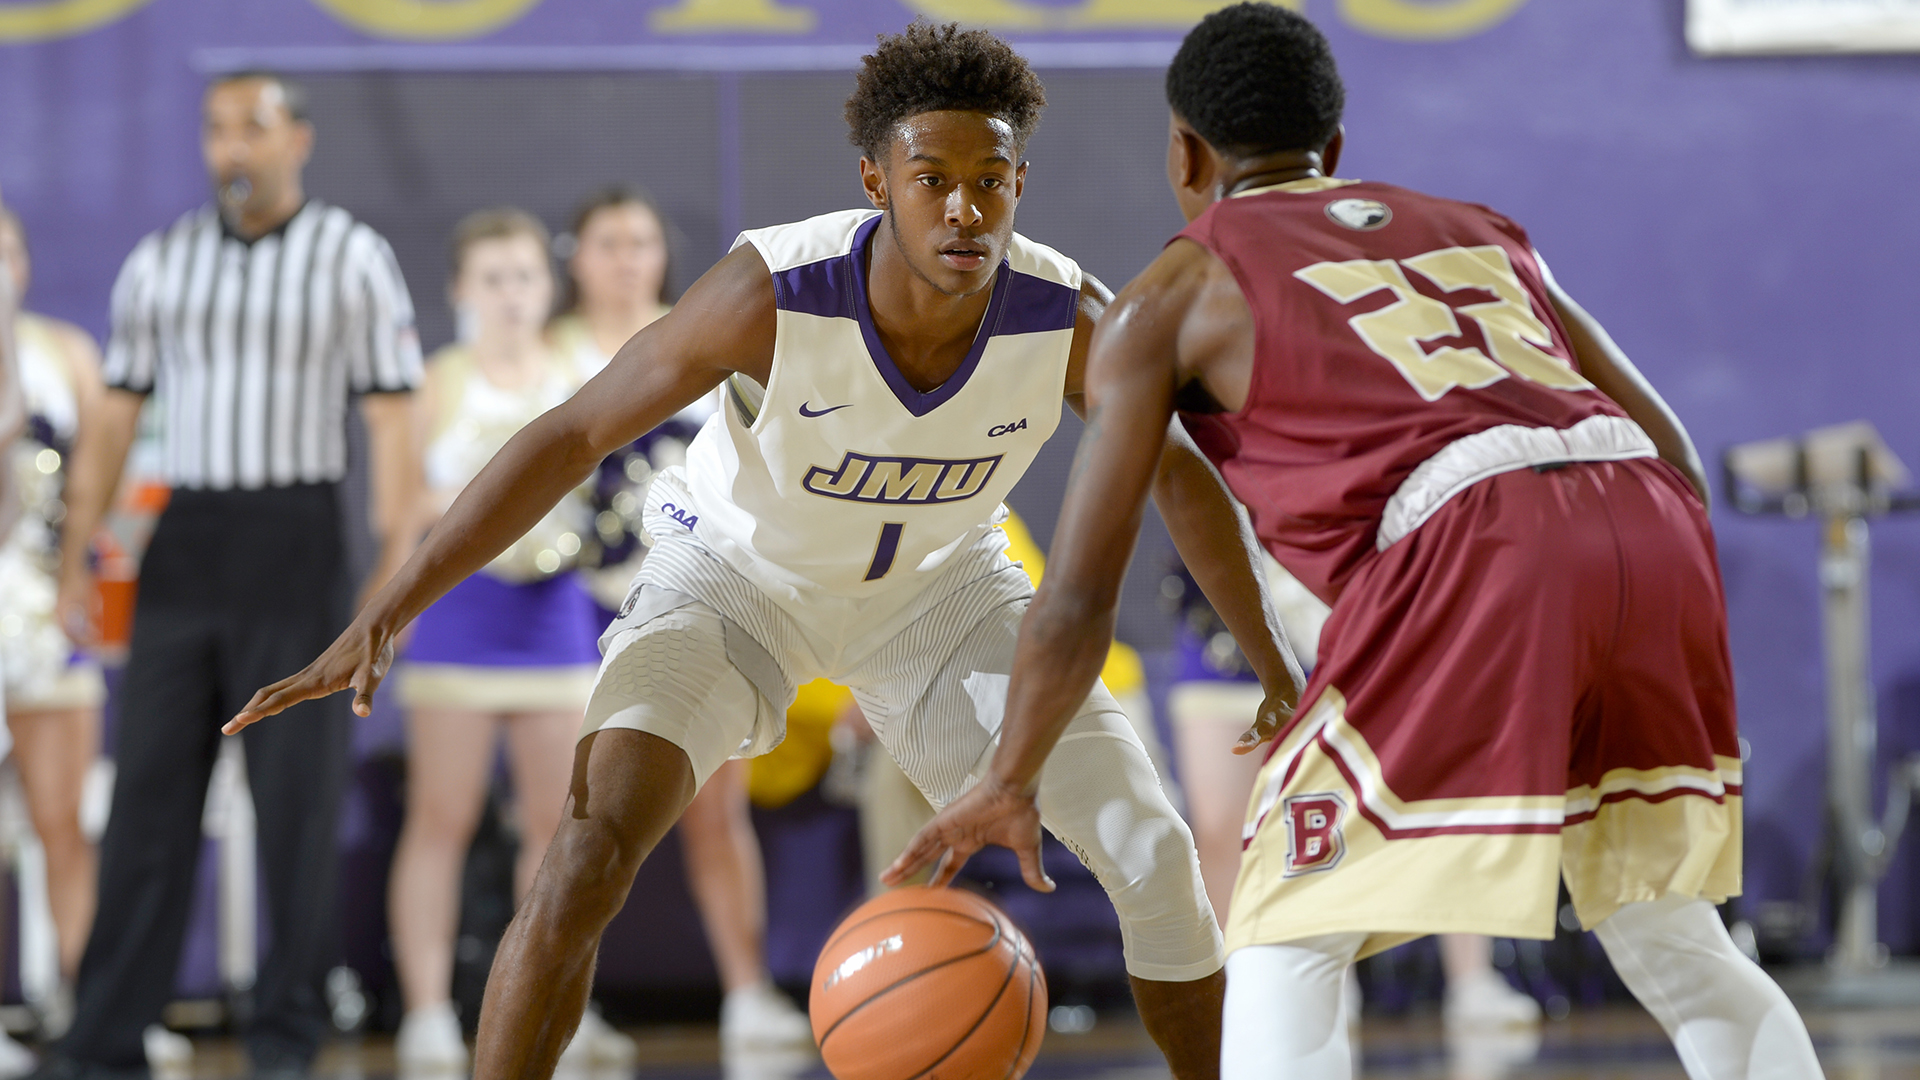 Men's Basketball: Dukes Drop 73-65 Decision to Weber State)